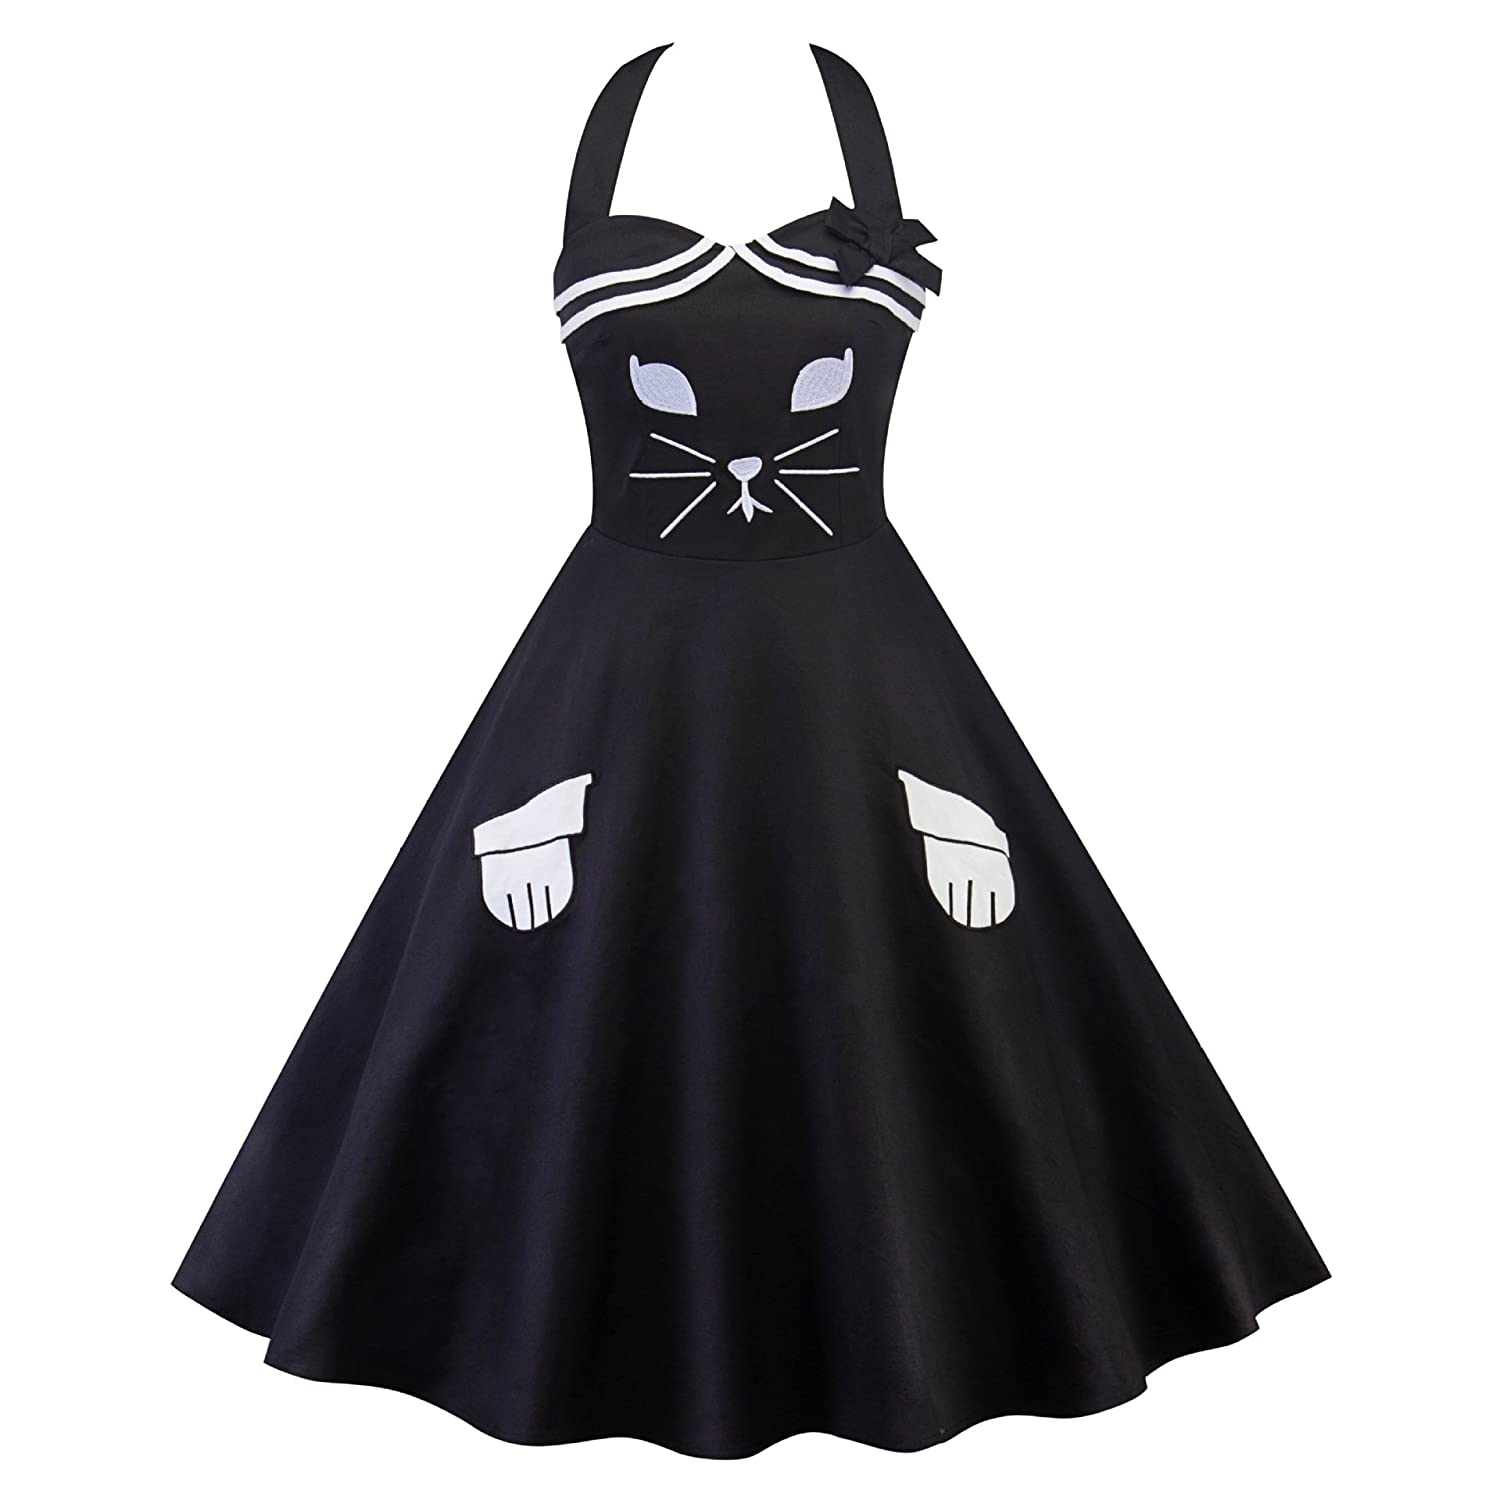 Wellwits Womens Cat Embroidery Sailor Stripes Halter Vintage Nautical Dress